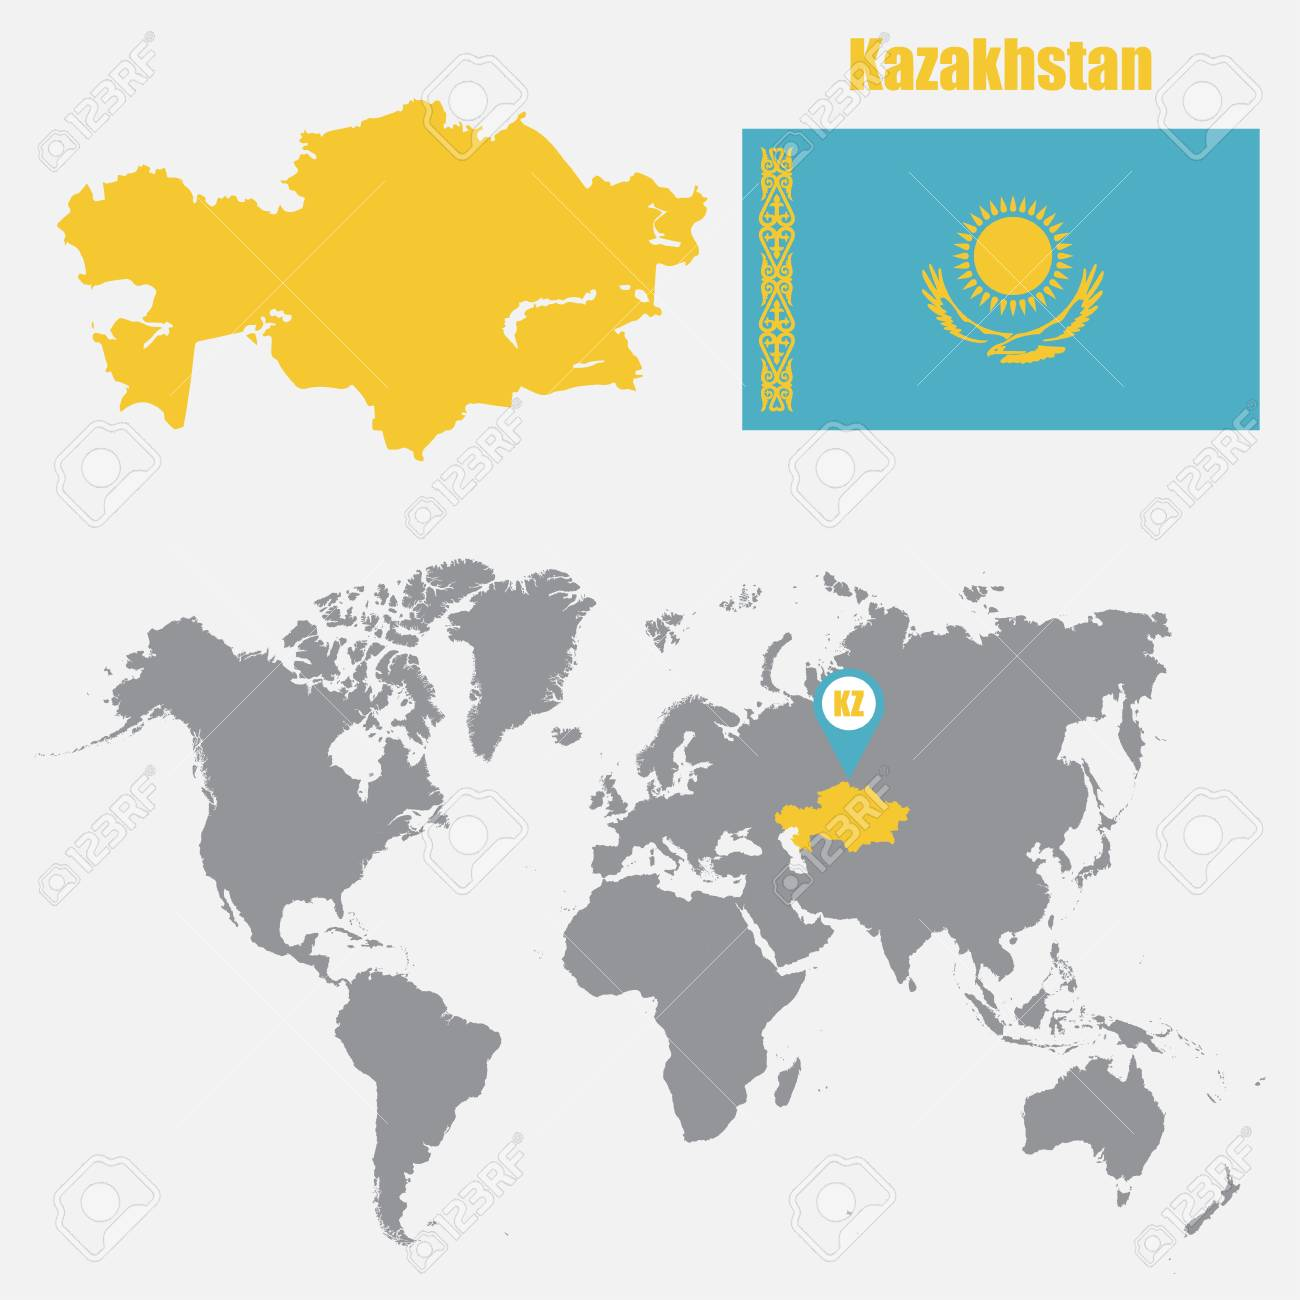 Kazakhstan map on a world map with flag and map pointer. Vector.. on morocco world map, algeria world map, panama world map, mongolia world map, india world map, pakistan world map, ukraine world map, brazil world map, caucasus mountains world map, manchuria world map, korea world map, uzbekistan world map, thailand world map, kosovo world map, new guinea world map, burma world map, nepal world map, sierra leone world map, romania world map, poland world map,